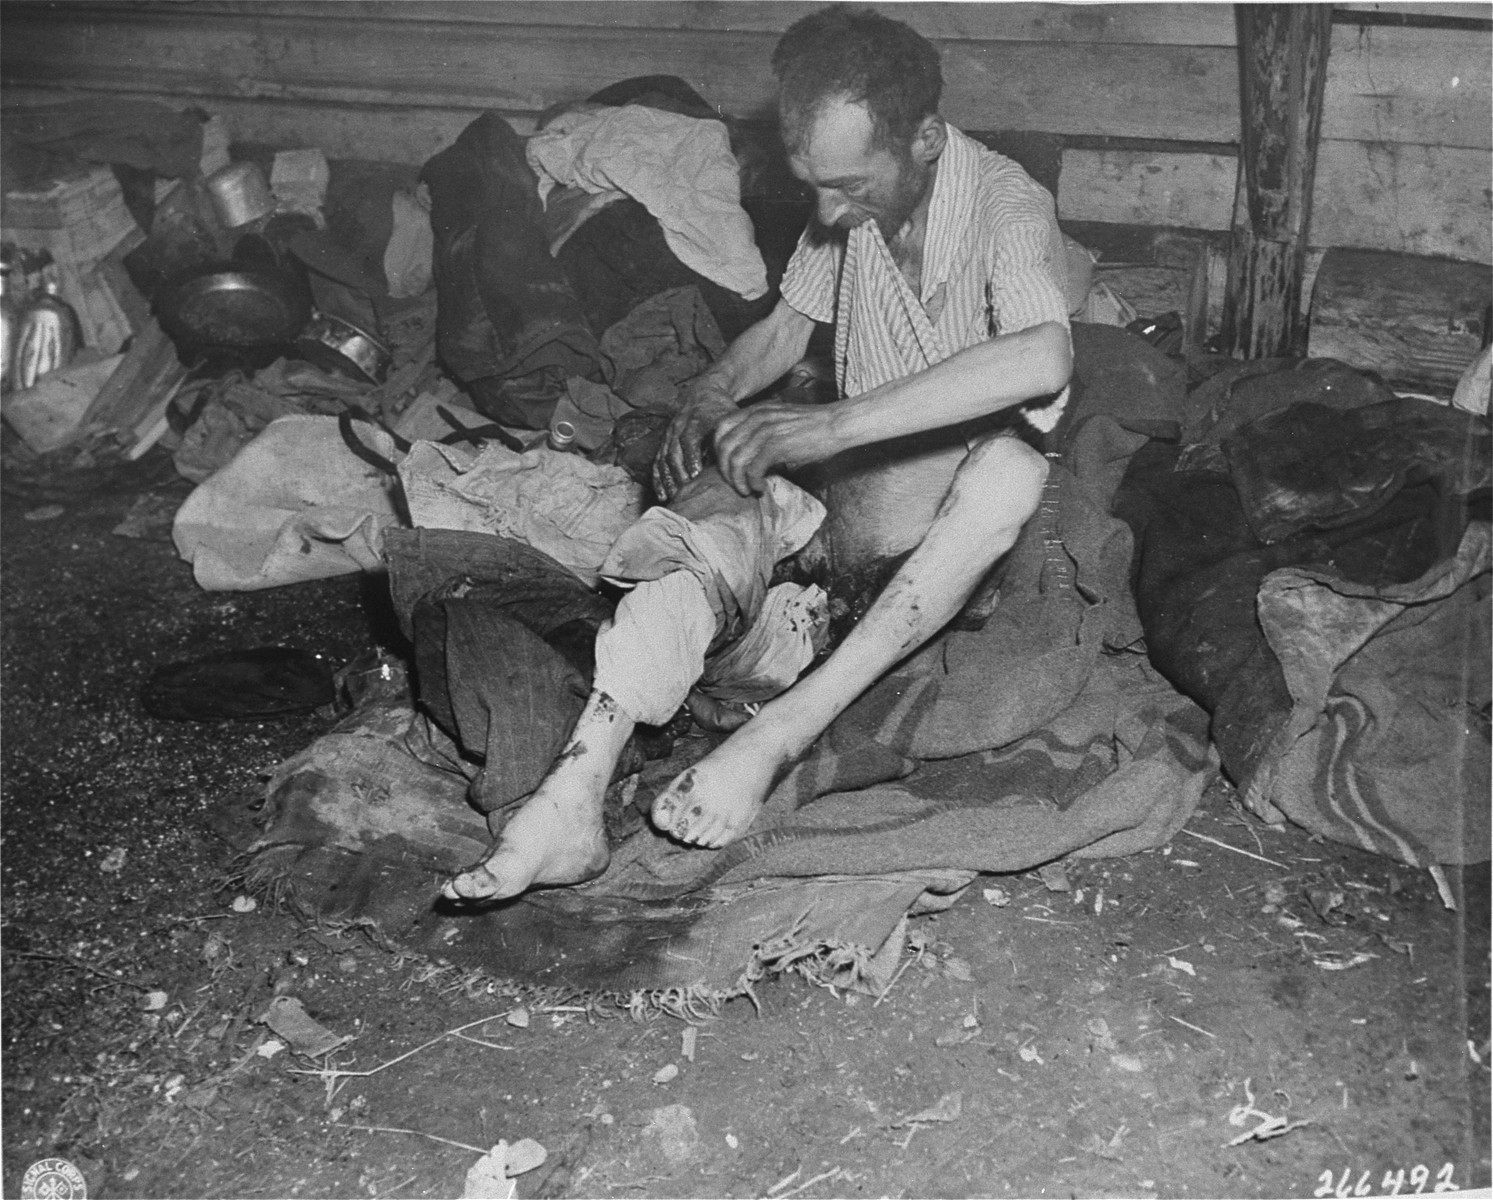 A survivor examines his wounded leg in the Gunskirchen concentration camp.